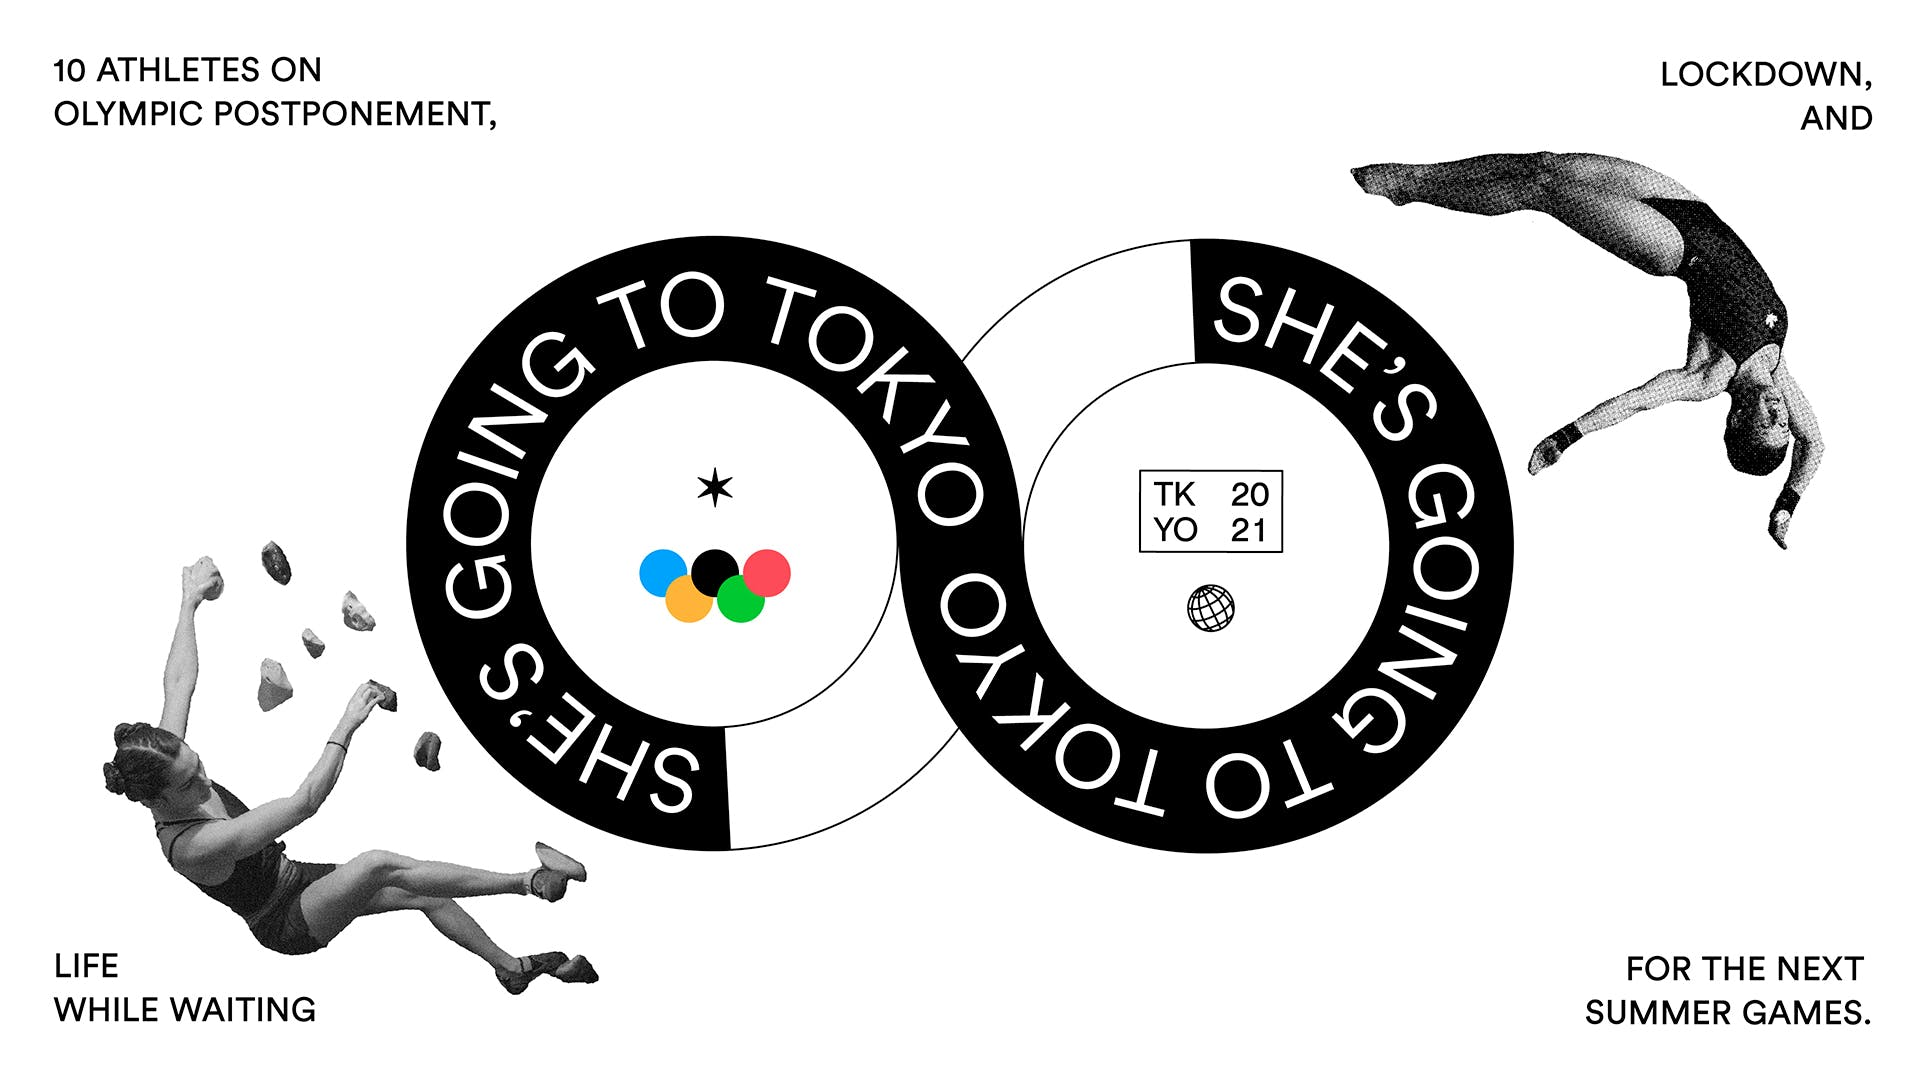 Olympics graphics She's Going to Tokyo